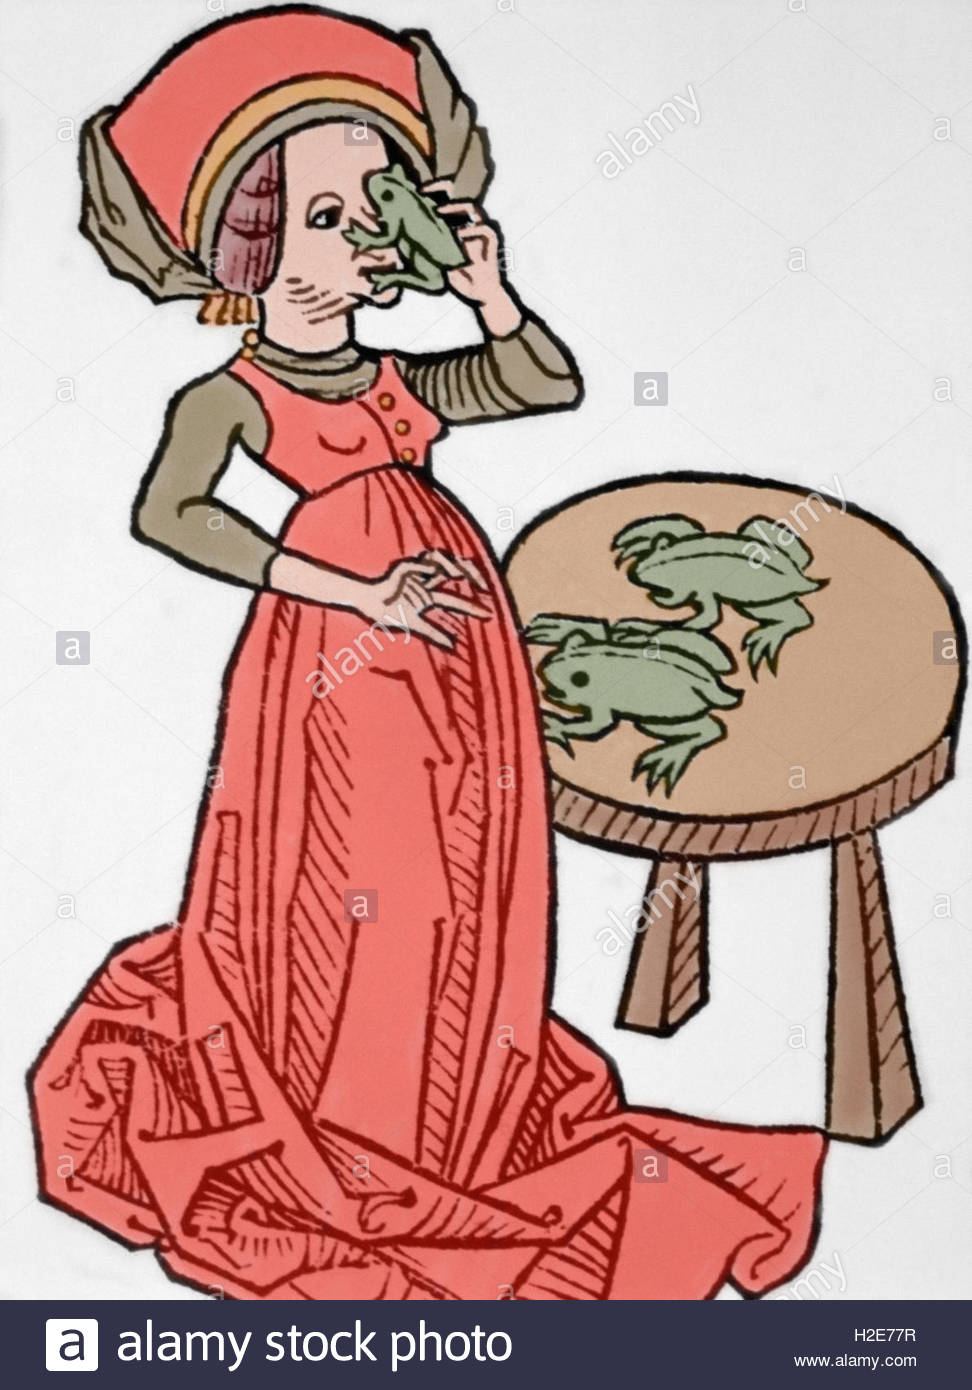 Late Middle Ages Stock Photos & Late Middle Ages Stock Images.